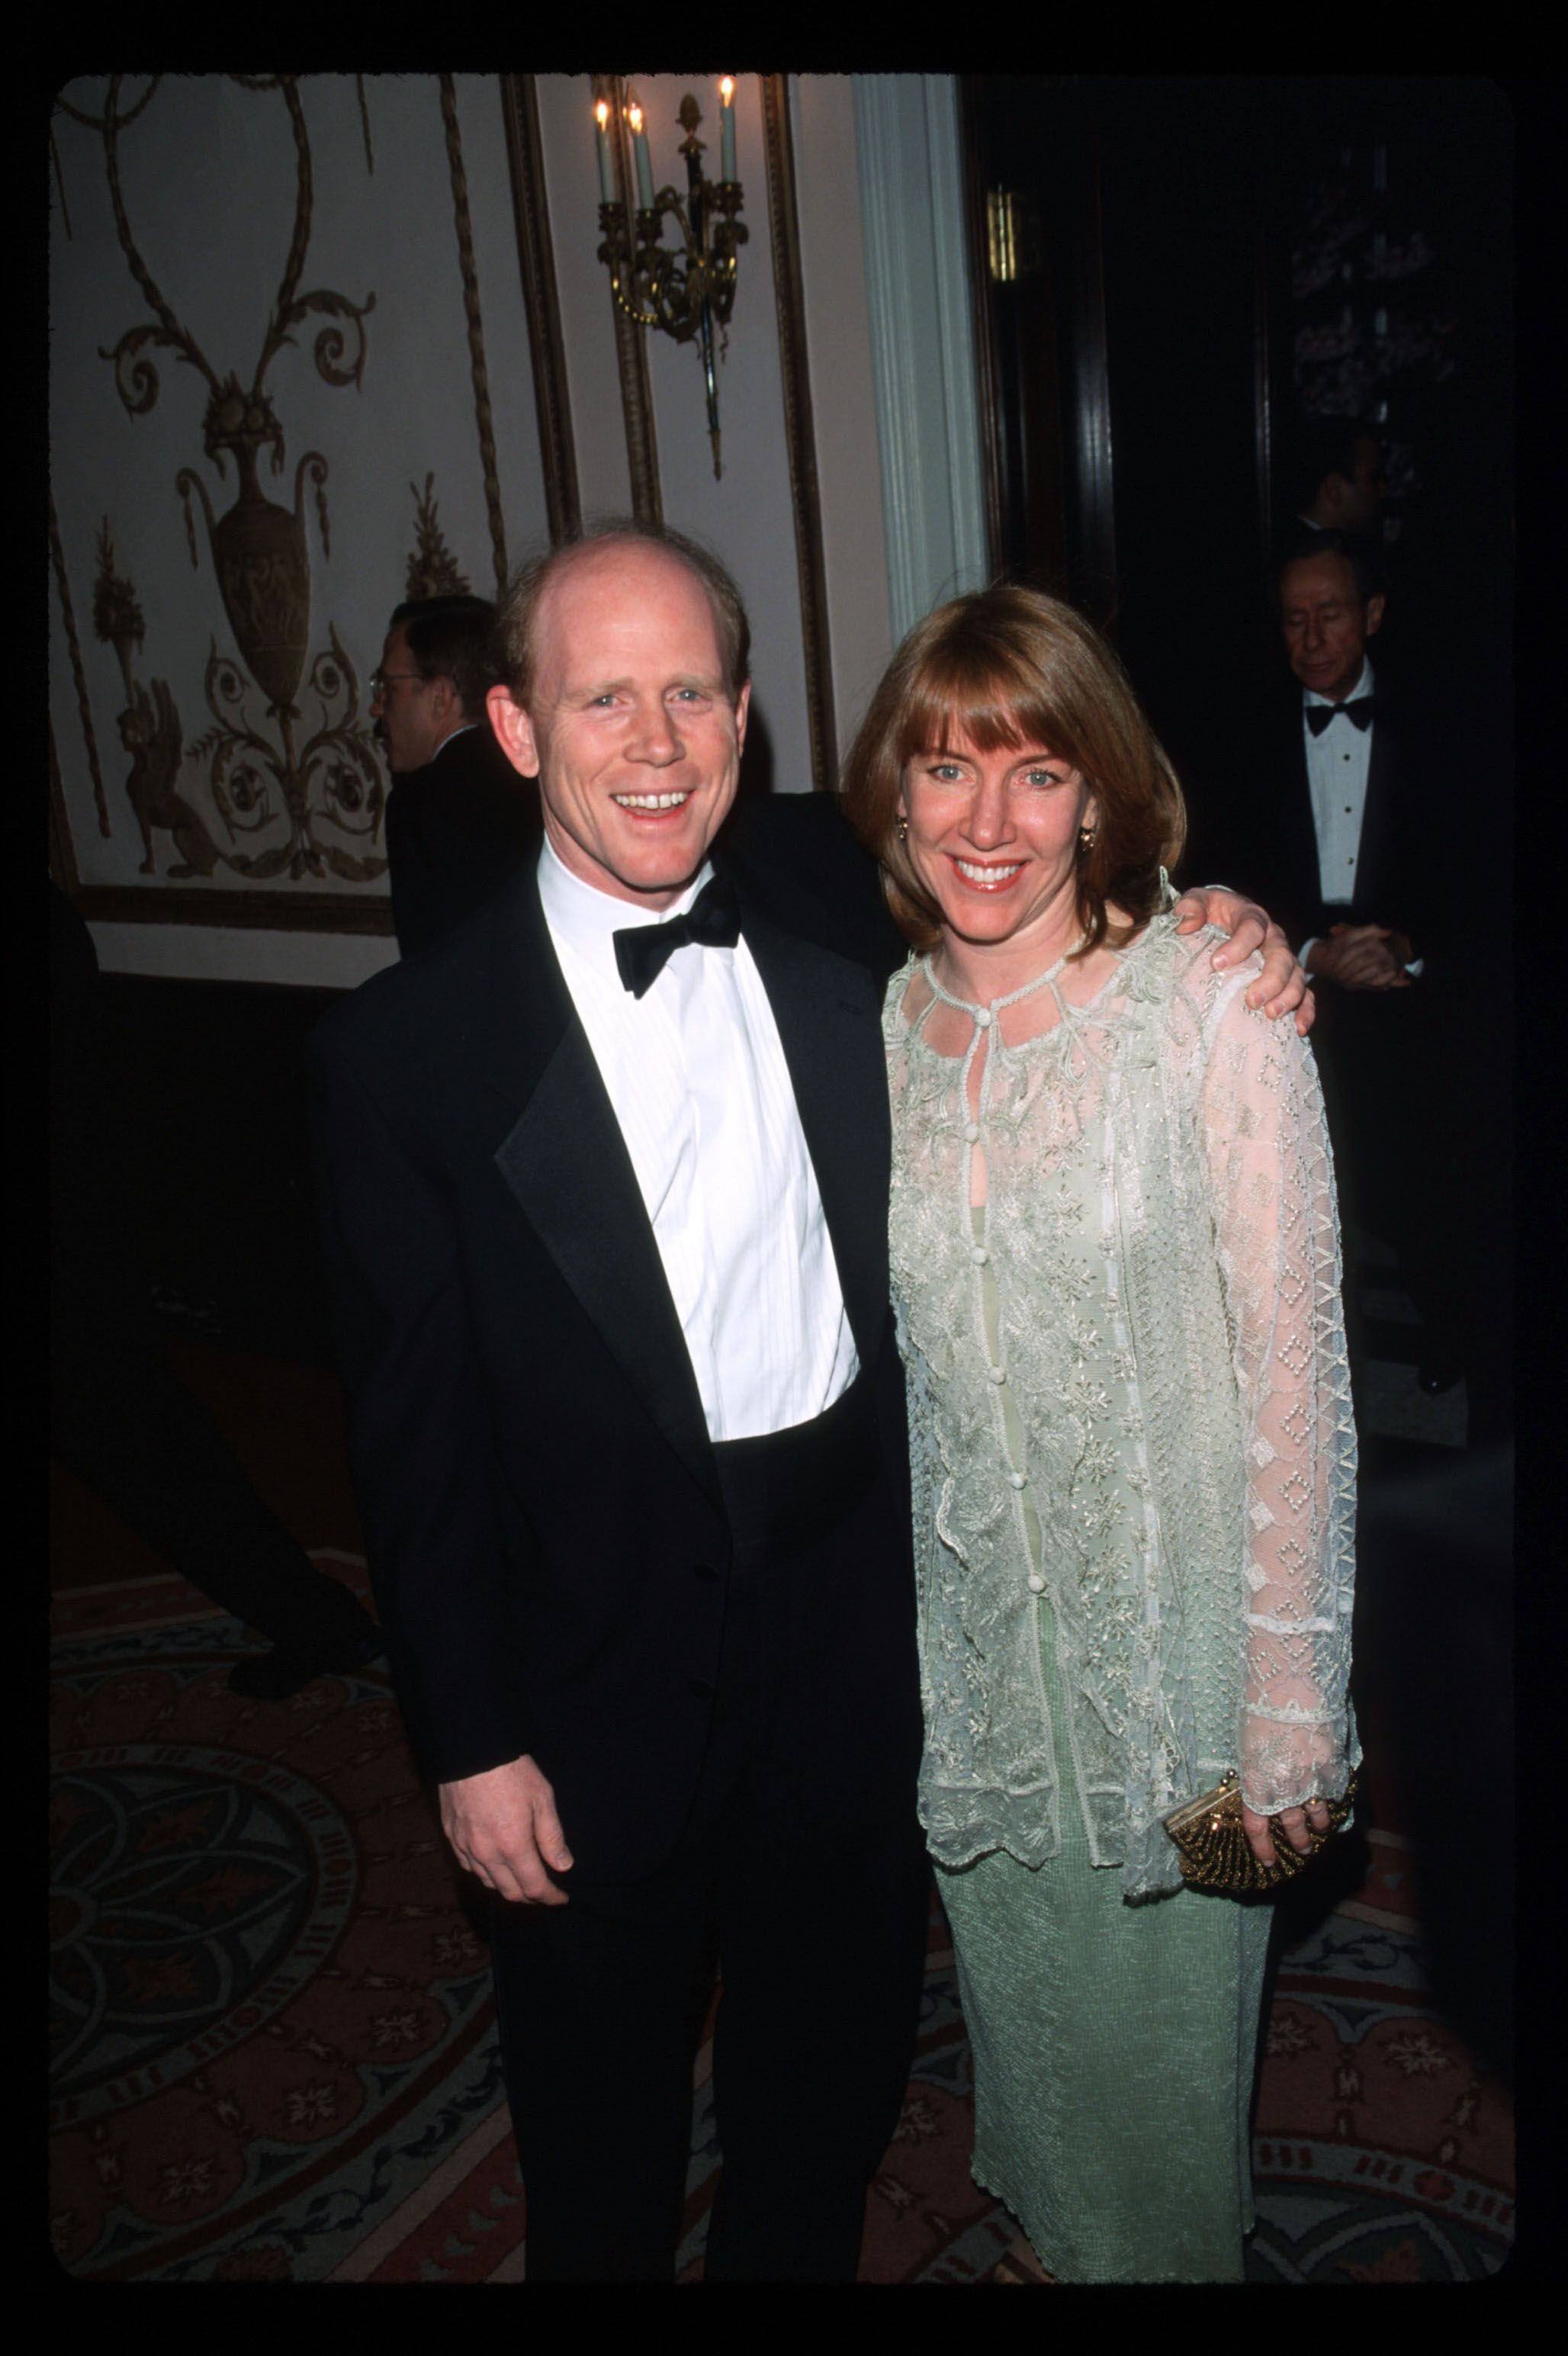 Ron Howard with his wife Cheryl on April 29, 1999, at the 14th Annual American Museum of the Moving Image Tribute in New York City | Photo:Evan Agostini/Liaison/Getty Images